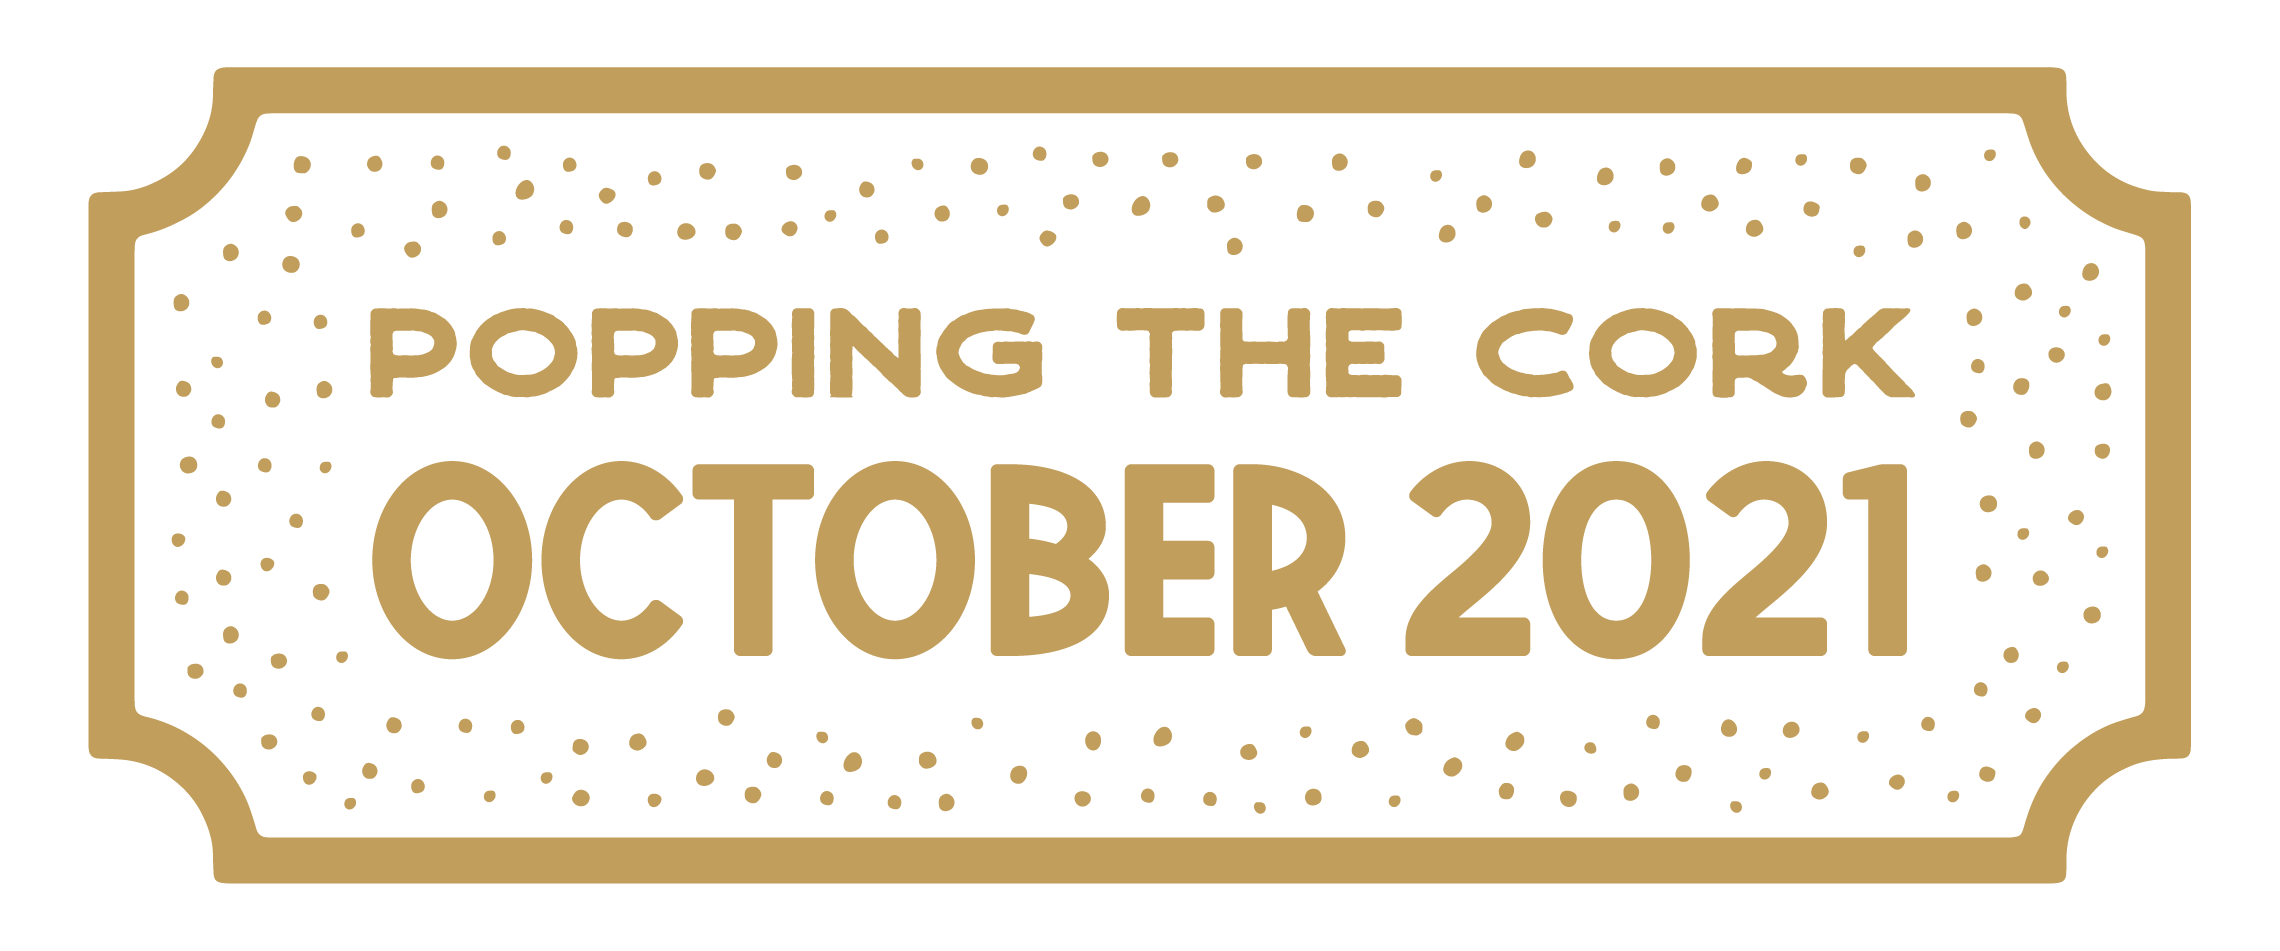 Popping the Cork October 2021